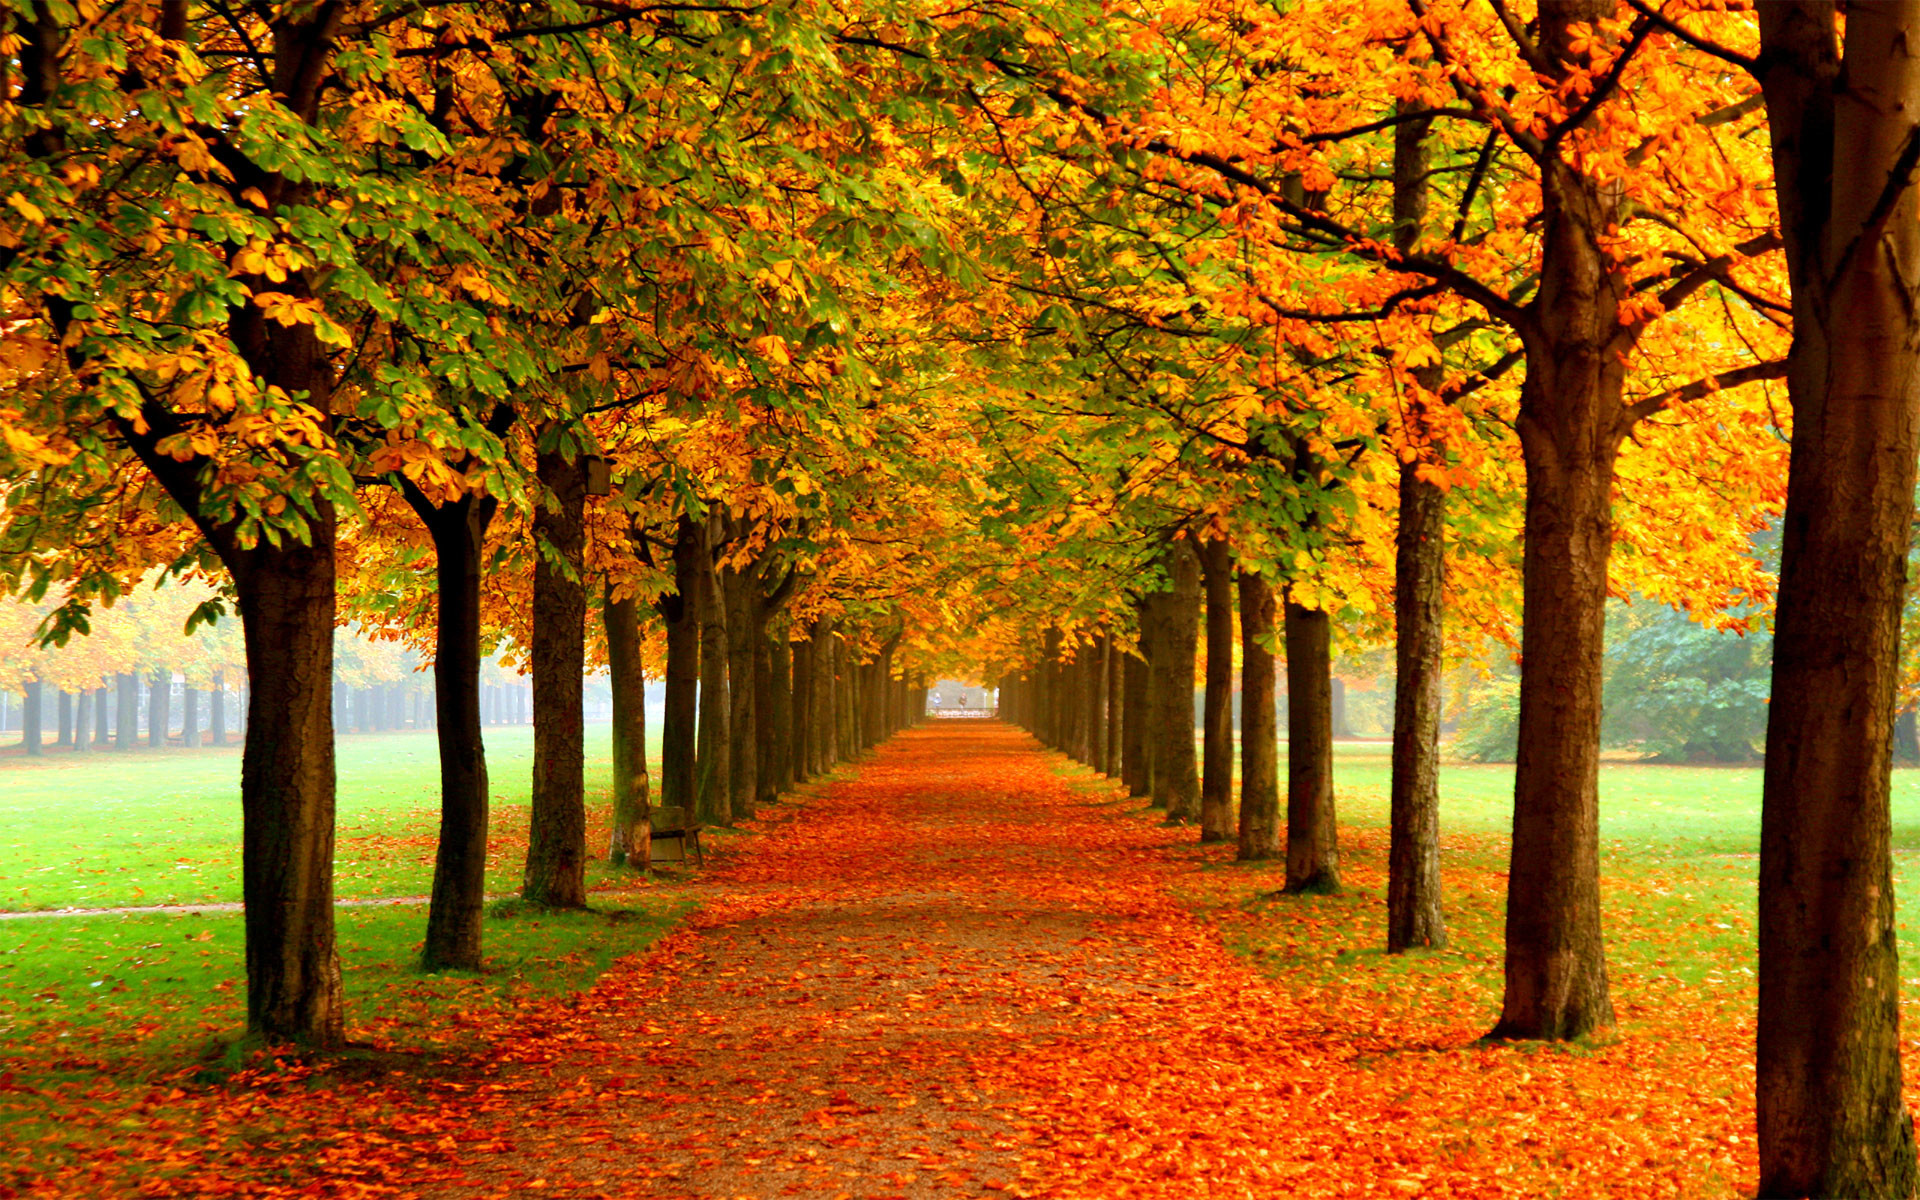 High Resolution Fall Wallpaper: Autumn Background (61+ Images